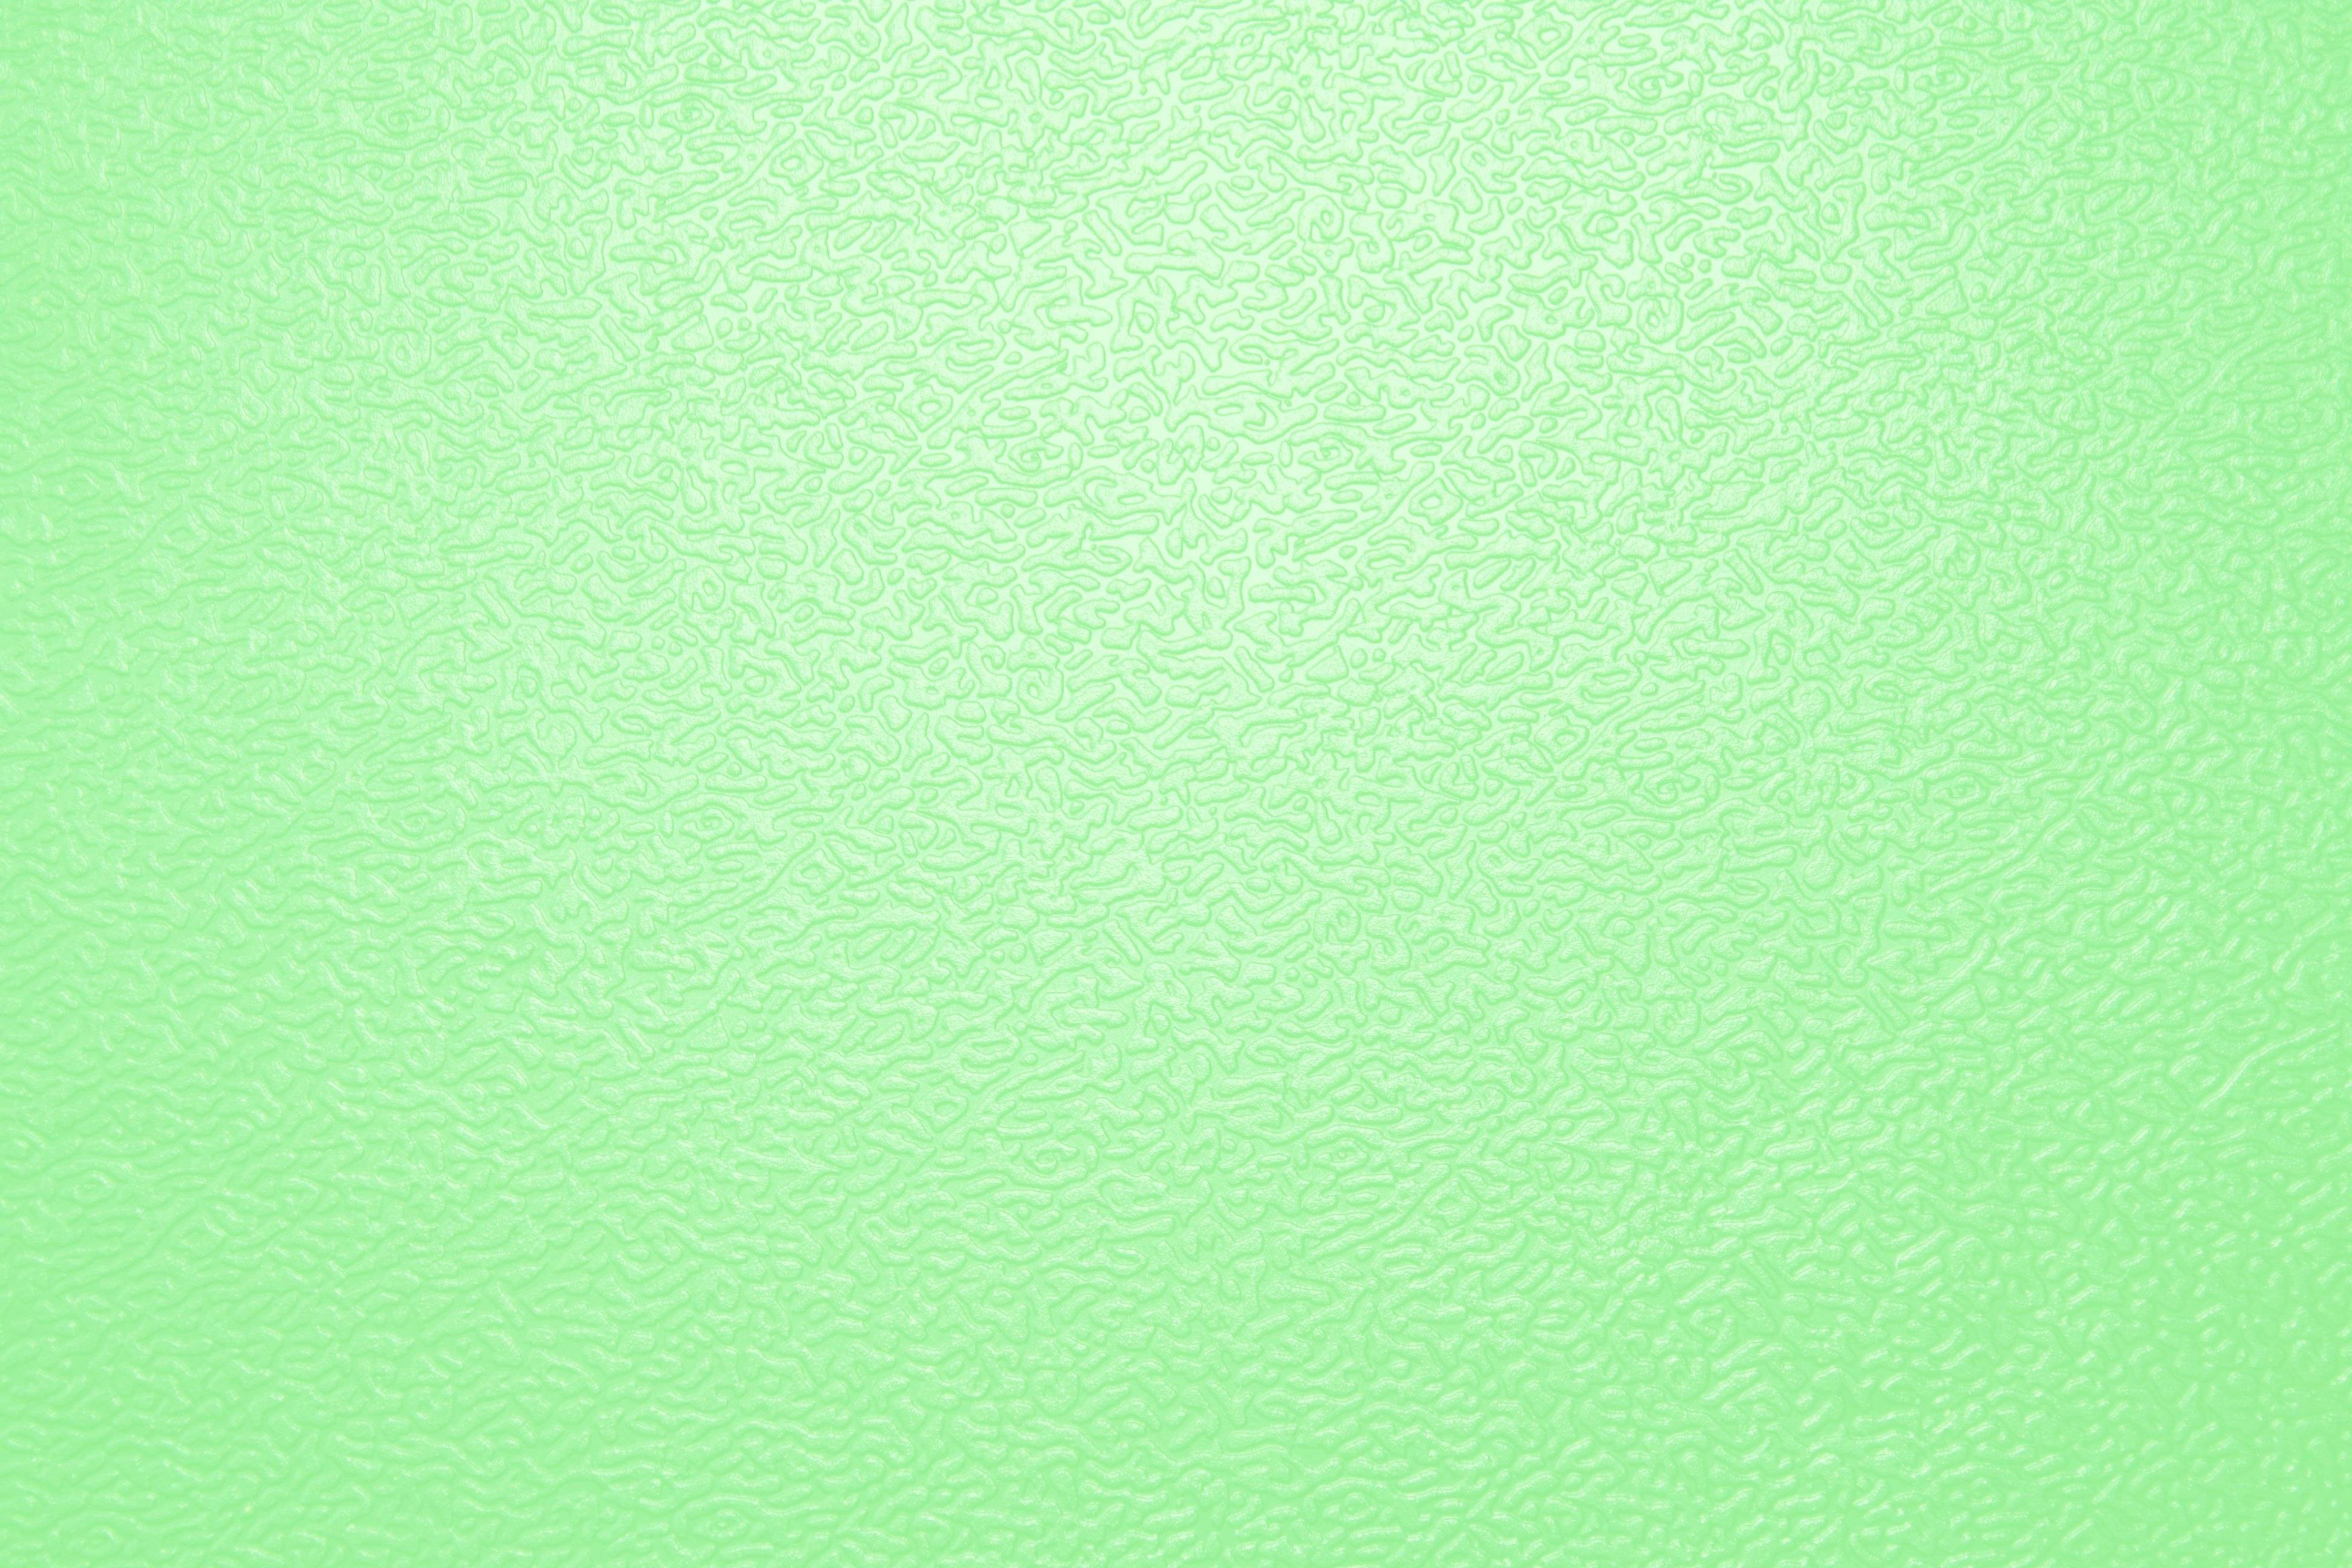 Light Green Background 1 Download Free Beautiful Full HD